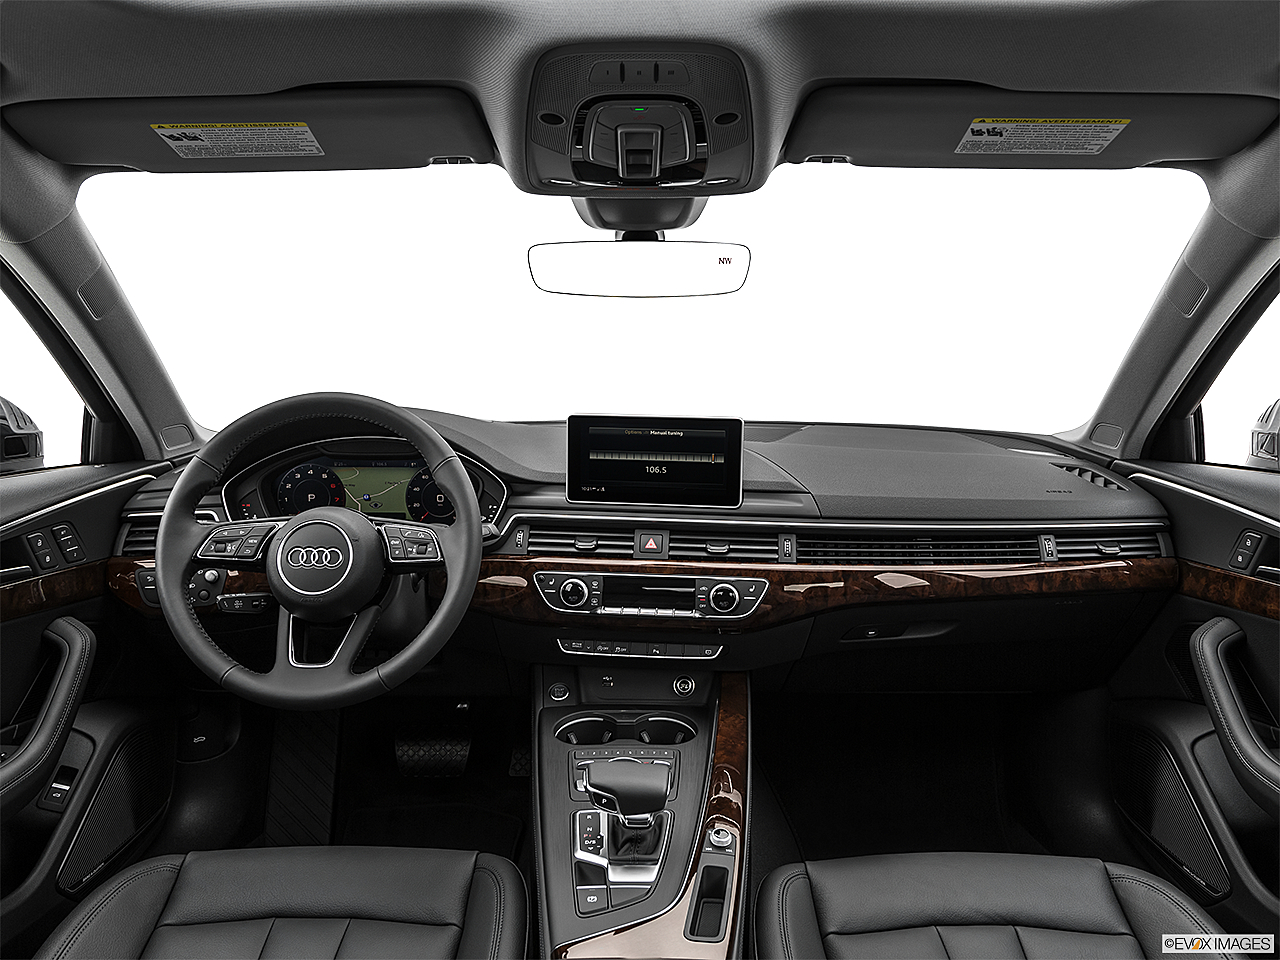 2019 Audi A4 Prestige 2.0 TFSI, centered wide dash shot